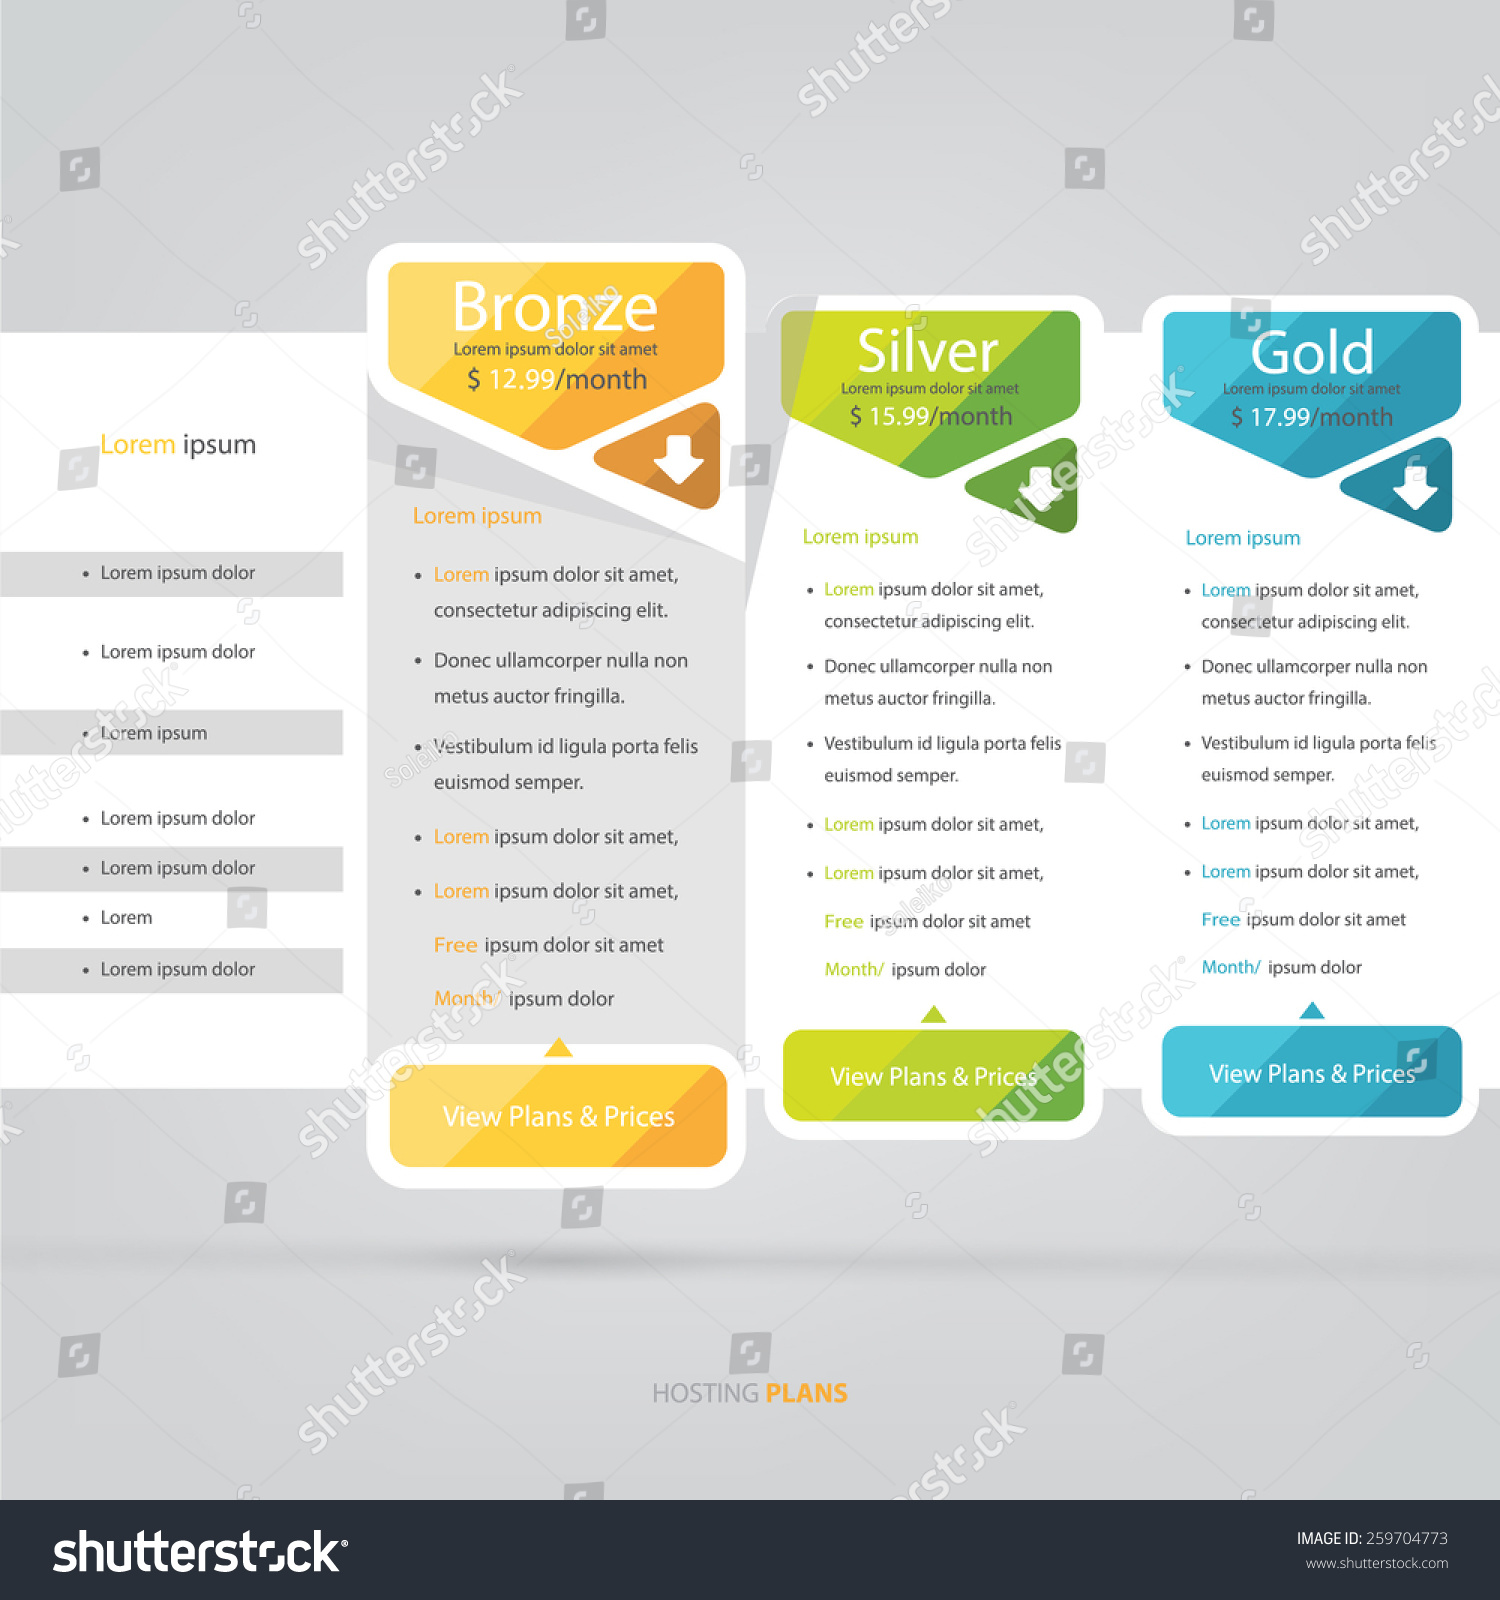 Price List Hosting Plans Web Boxes Stock Vector 259704773 ...